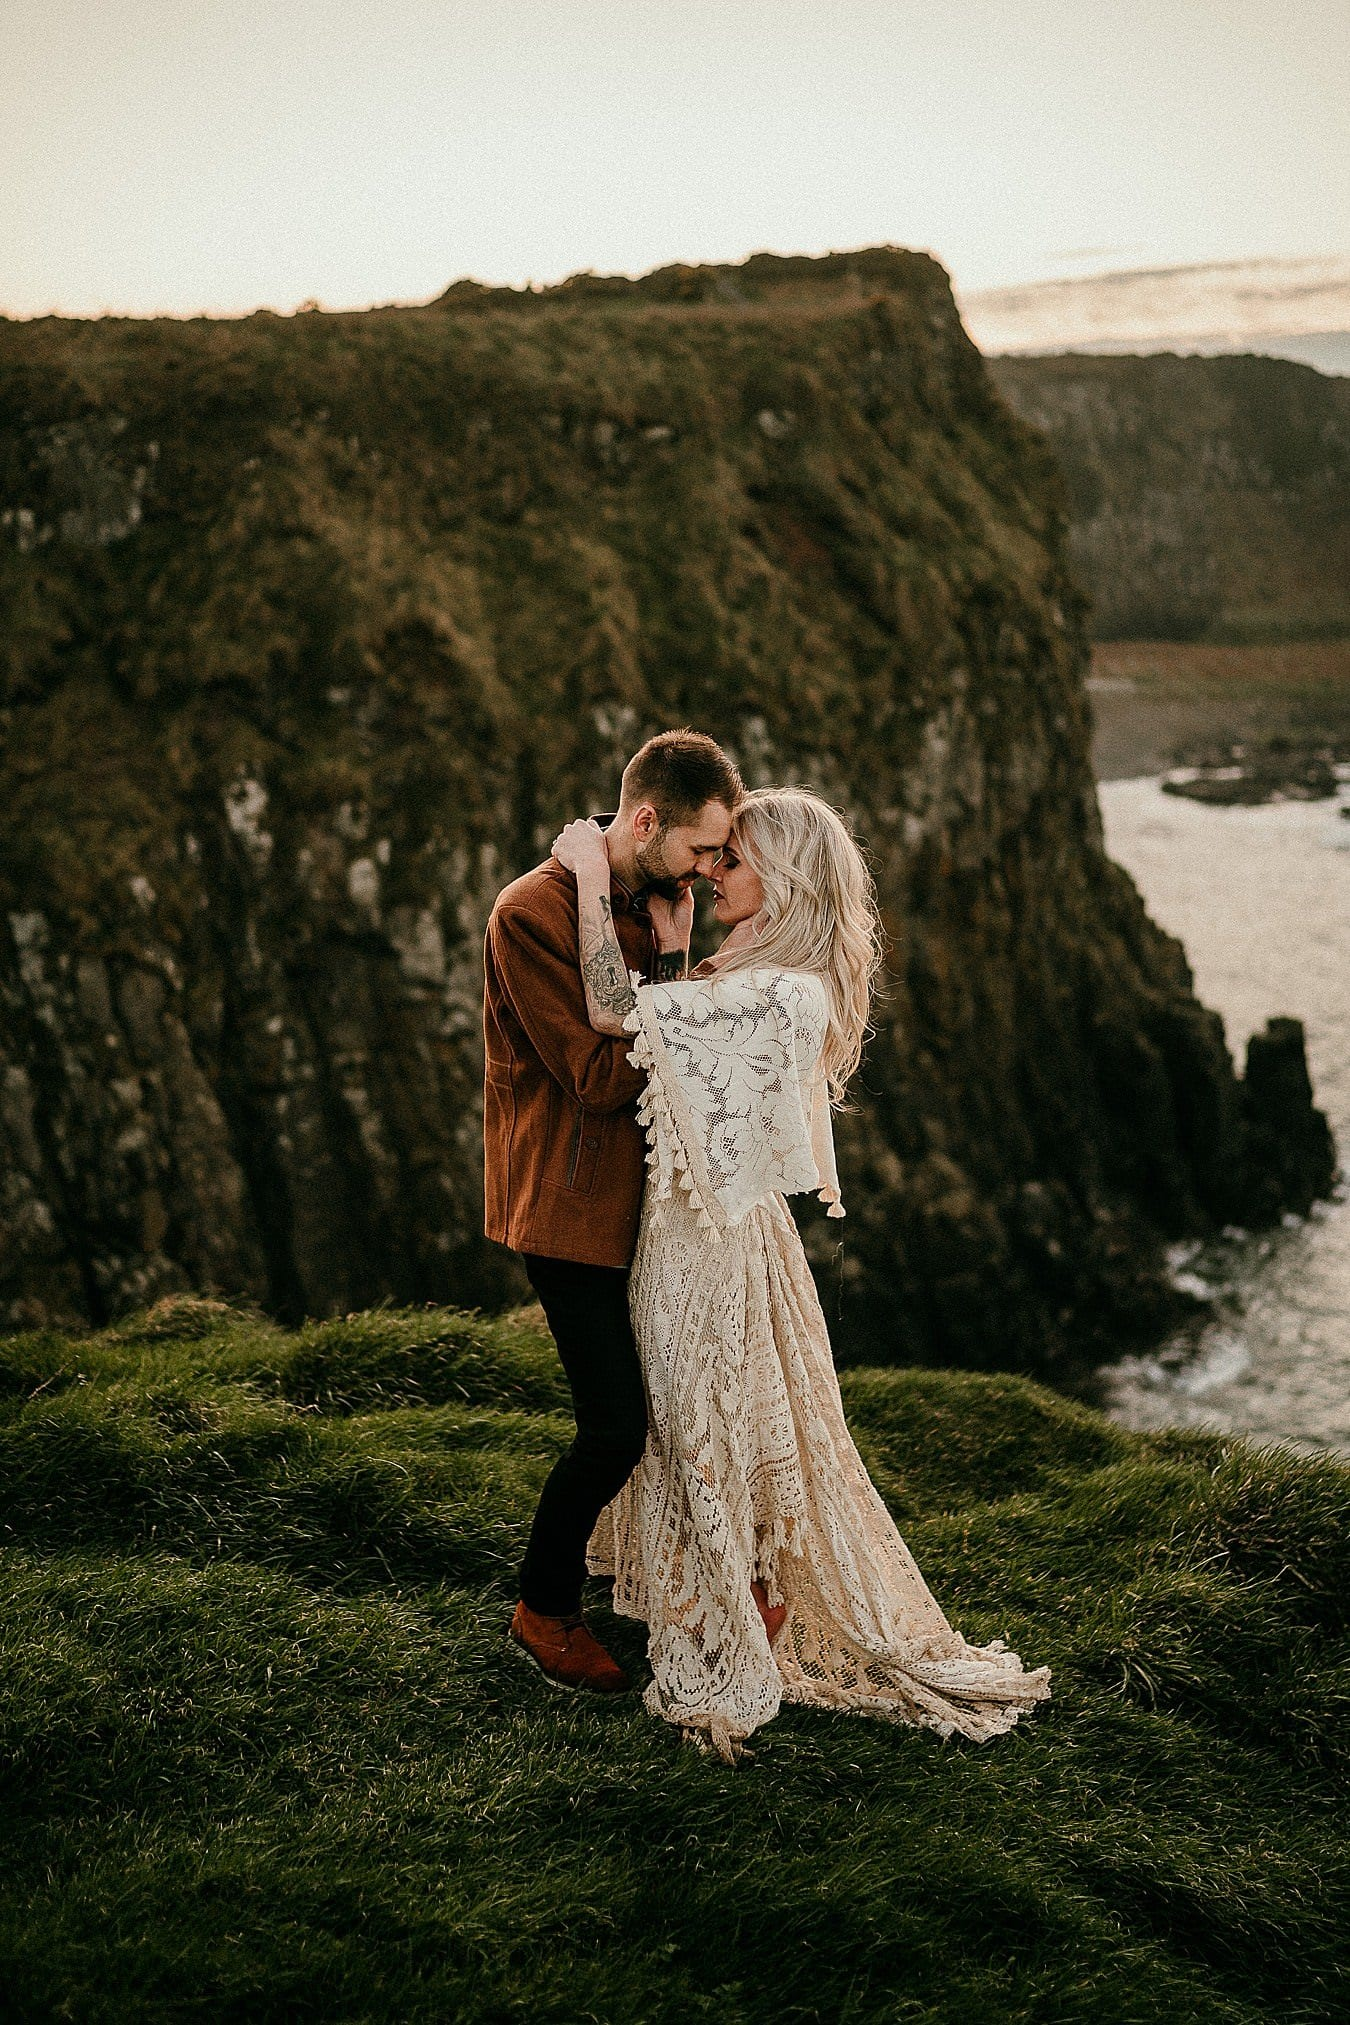 A sunset portrait in beautiful light on the Causeway Coast. Romantic adventure elopements in Europe.